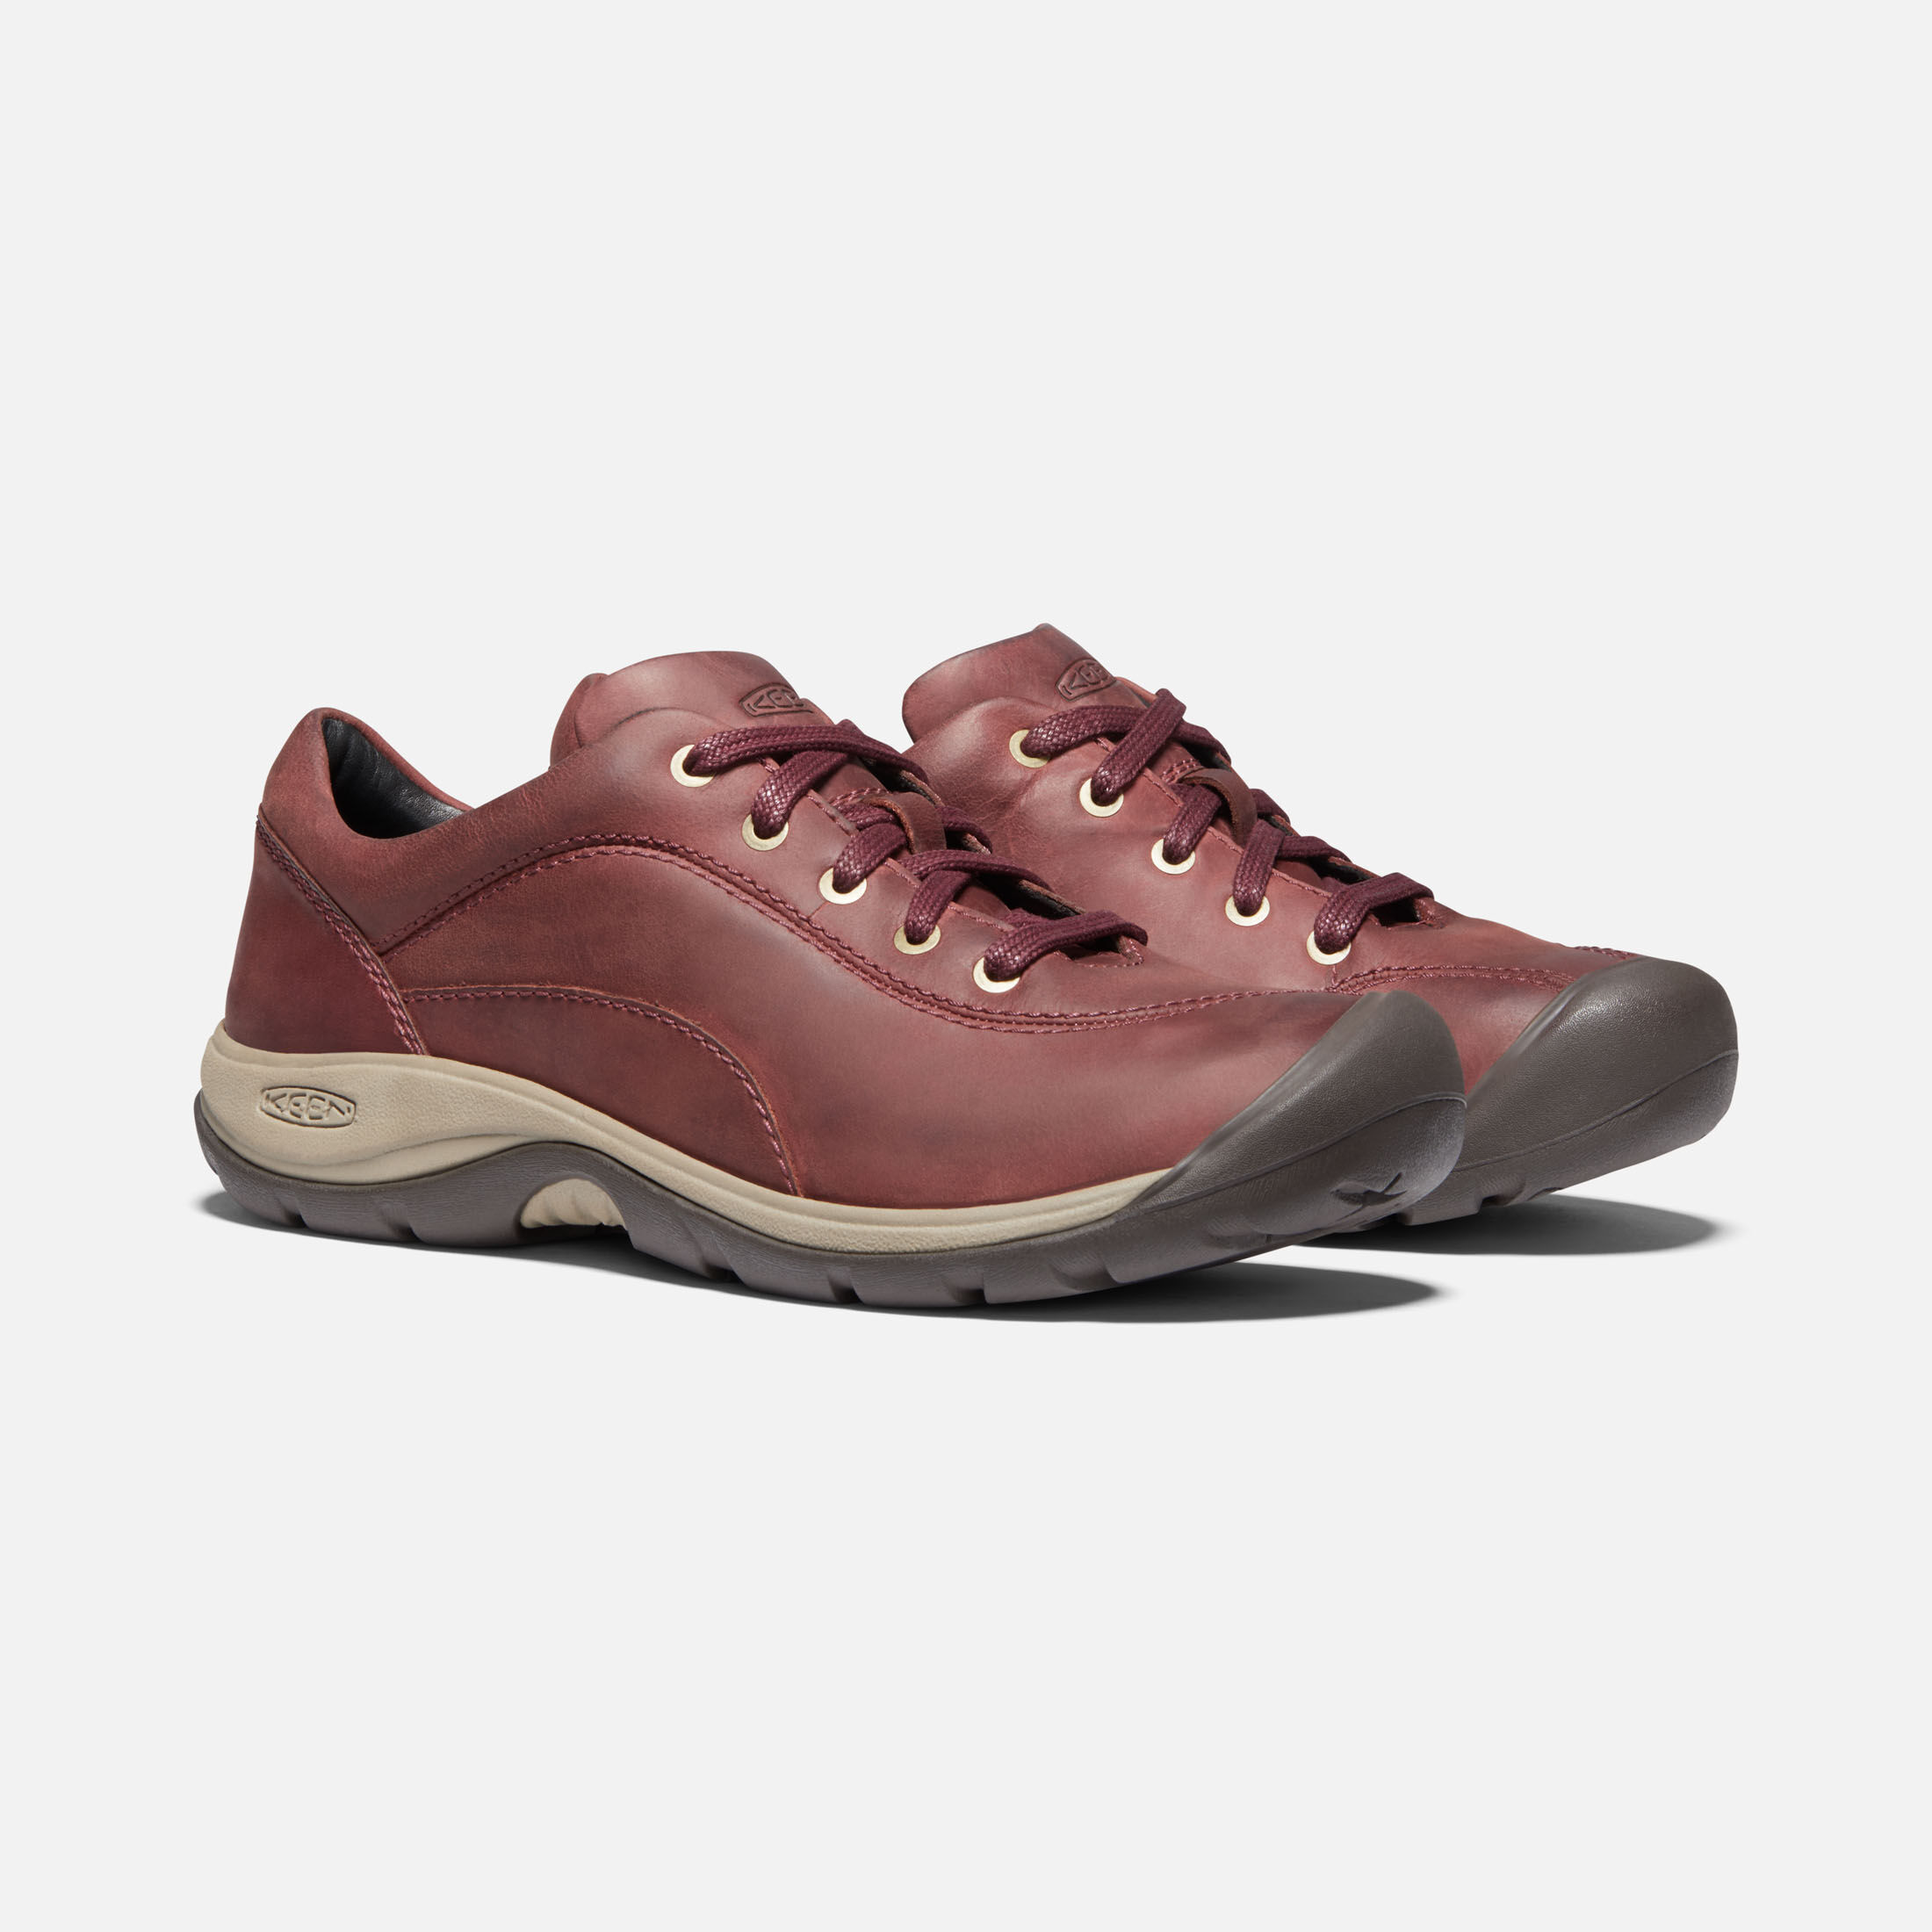 Casual Lace-Up Shoes | KEEN Footwear